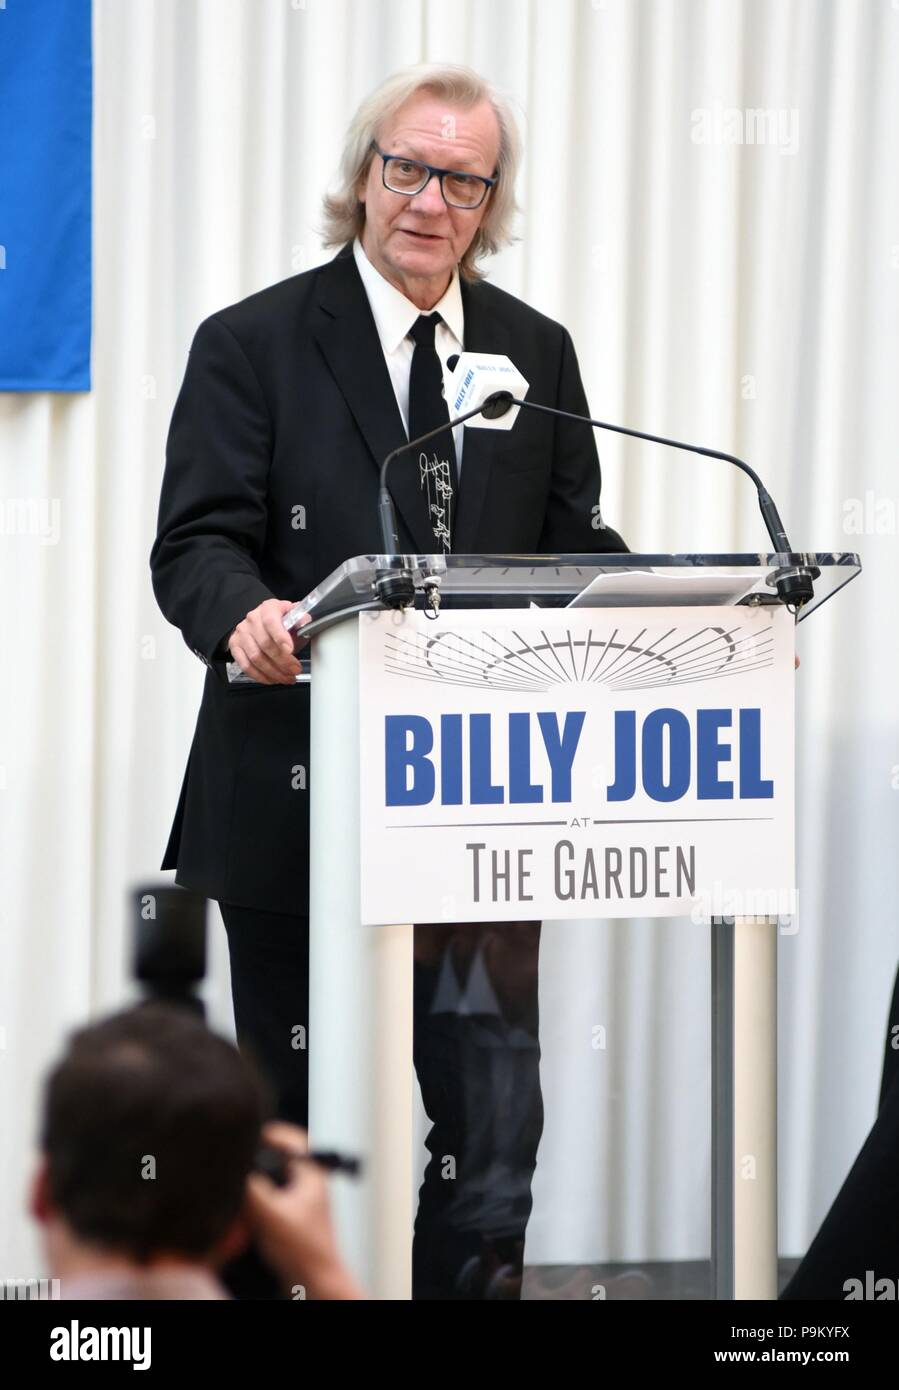 New York, NY, USA. 18th July, 2018. Jim Kerr at a public appearance for Billy Joel Celebrates 100th Performance at MSG, Madison Square Garden, New York, NY July 18, 2018. Credit: Derek Storm/Everett Collection/Alamy Live News - Stock Image